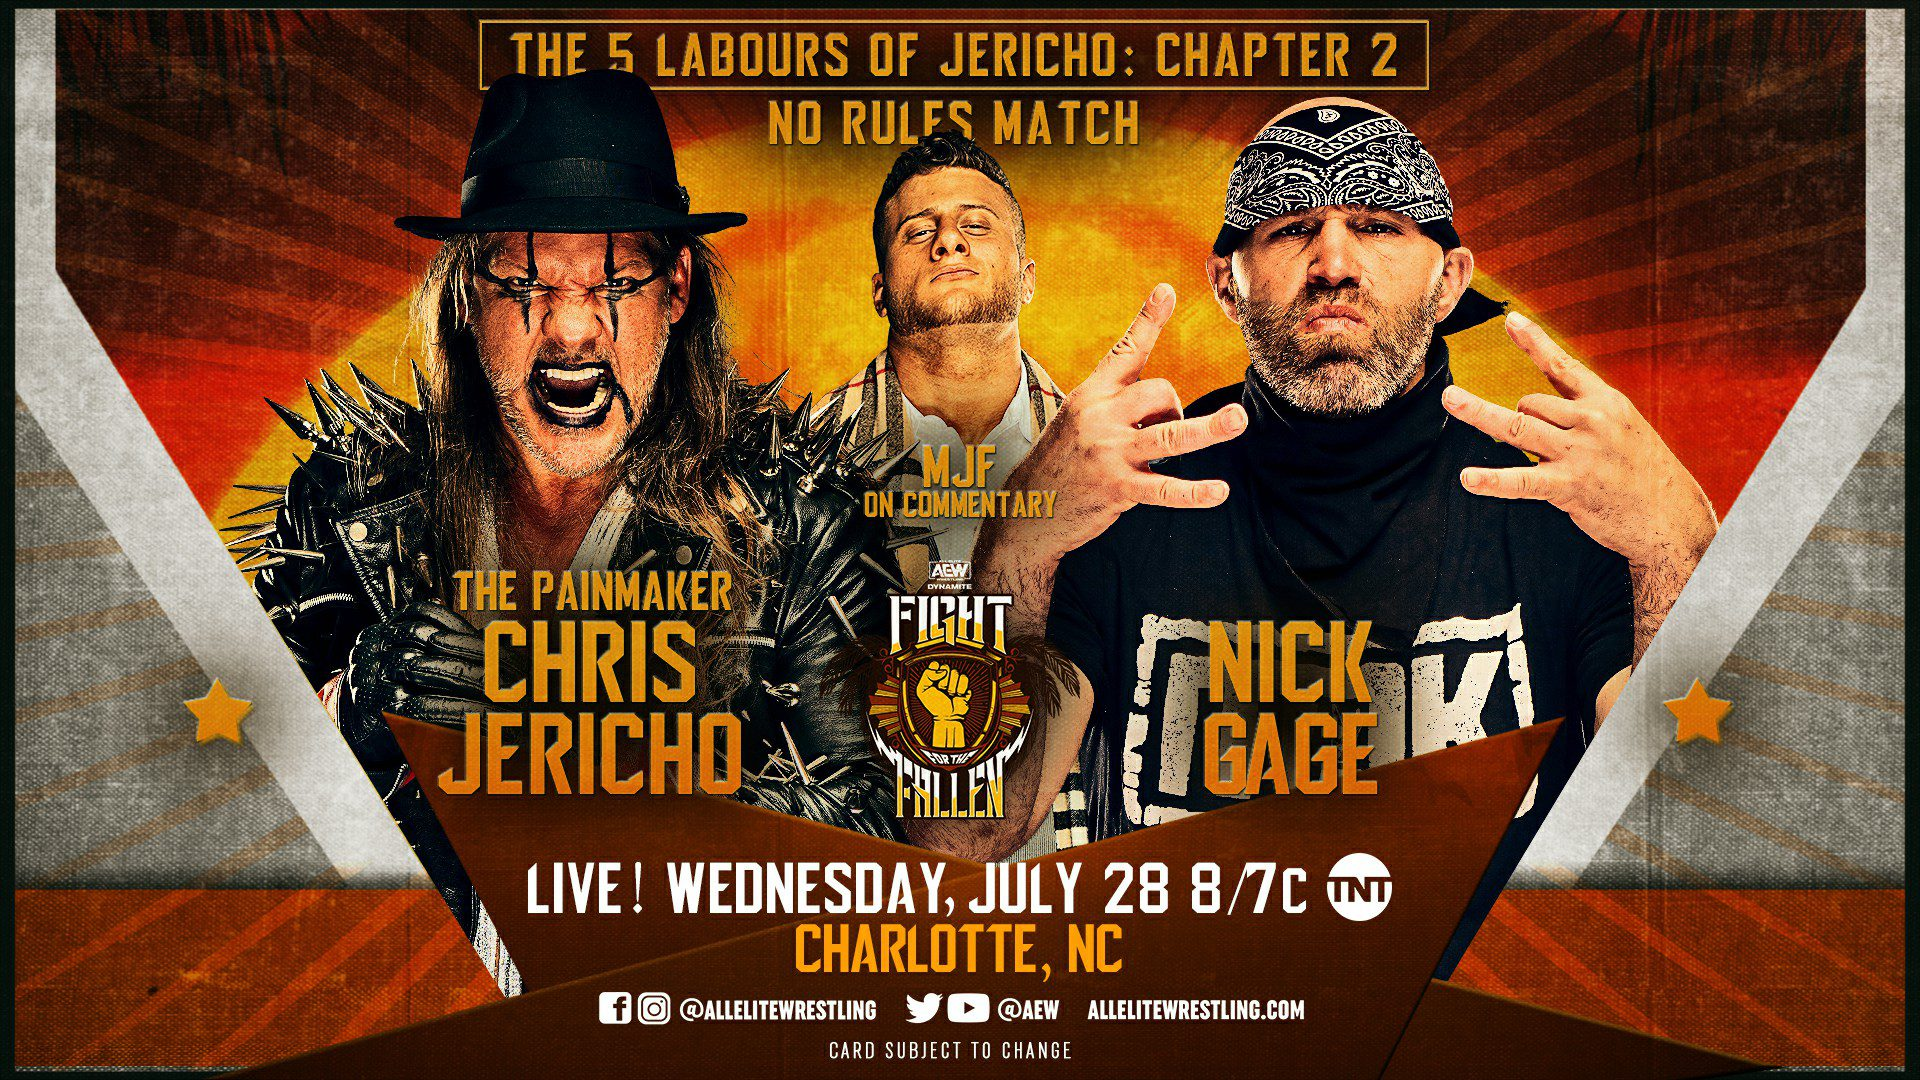 AEW Dynamite Fight For The Fallen Results: Chris Jericho Vs. Nick Gage